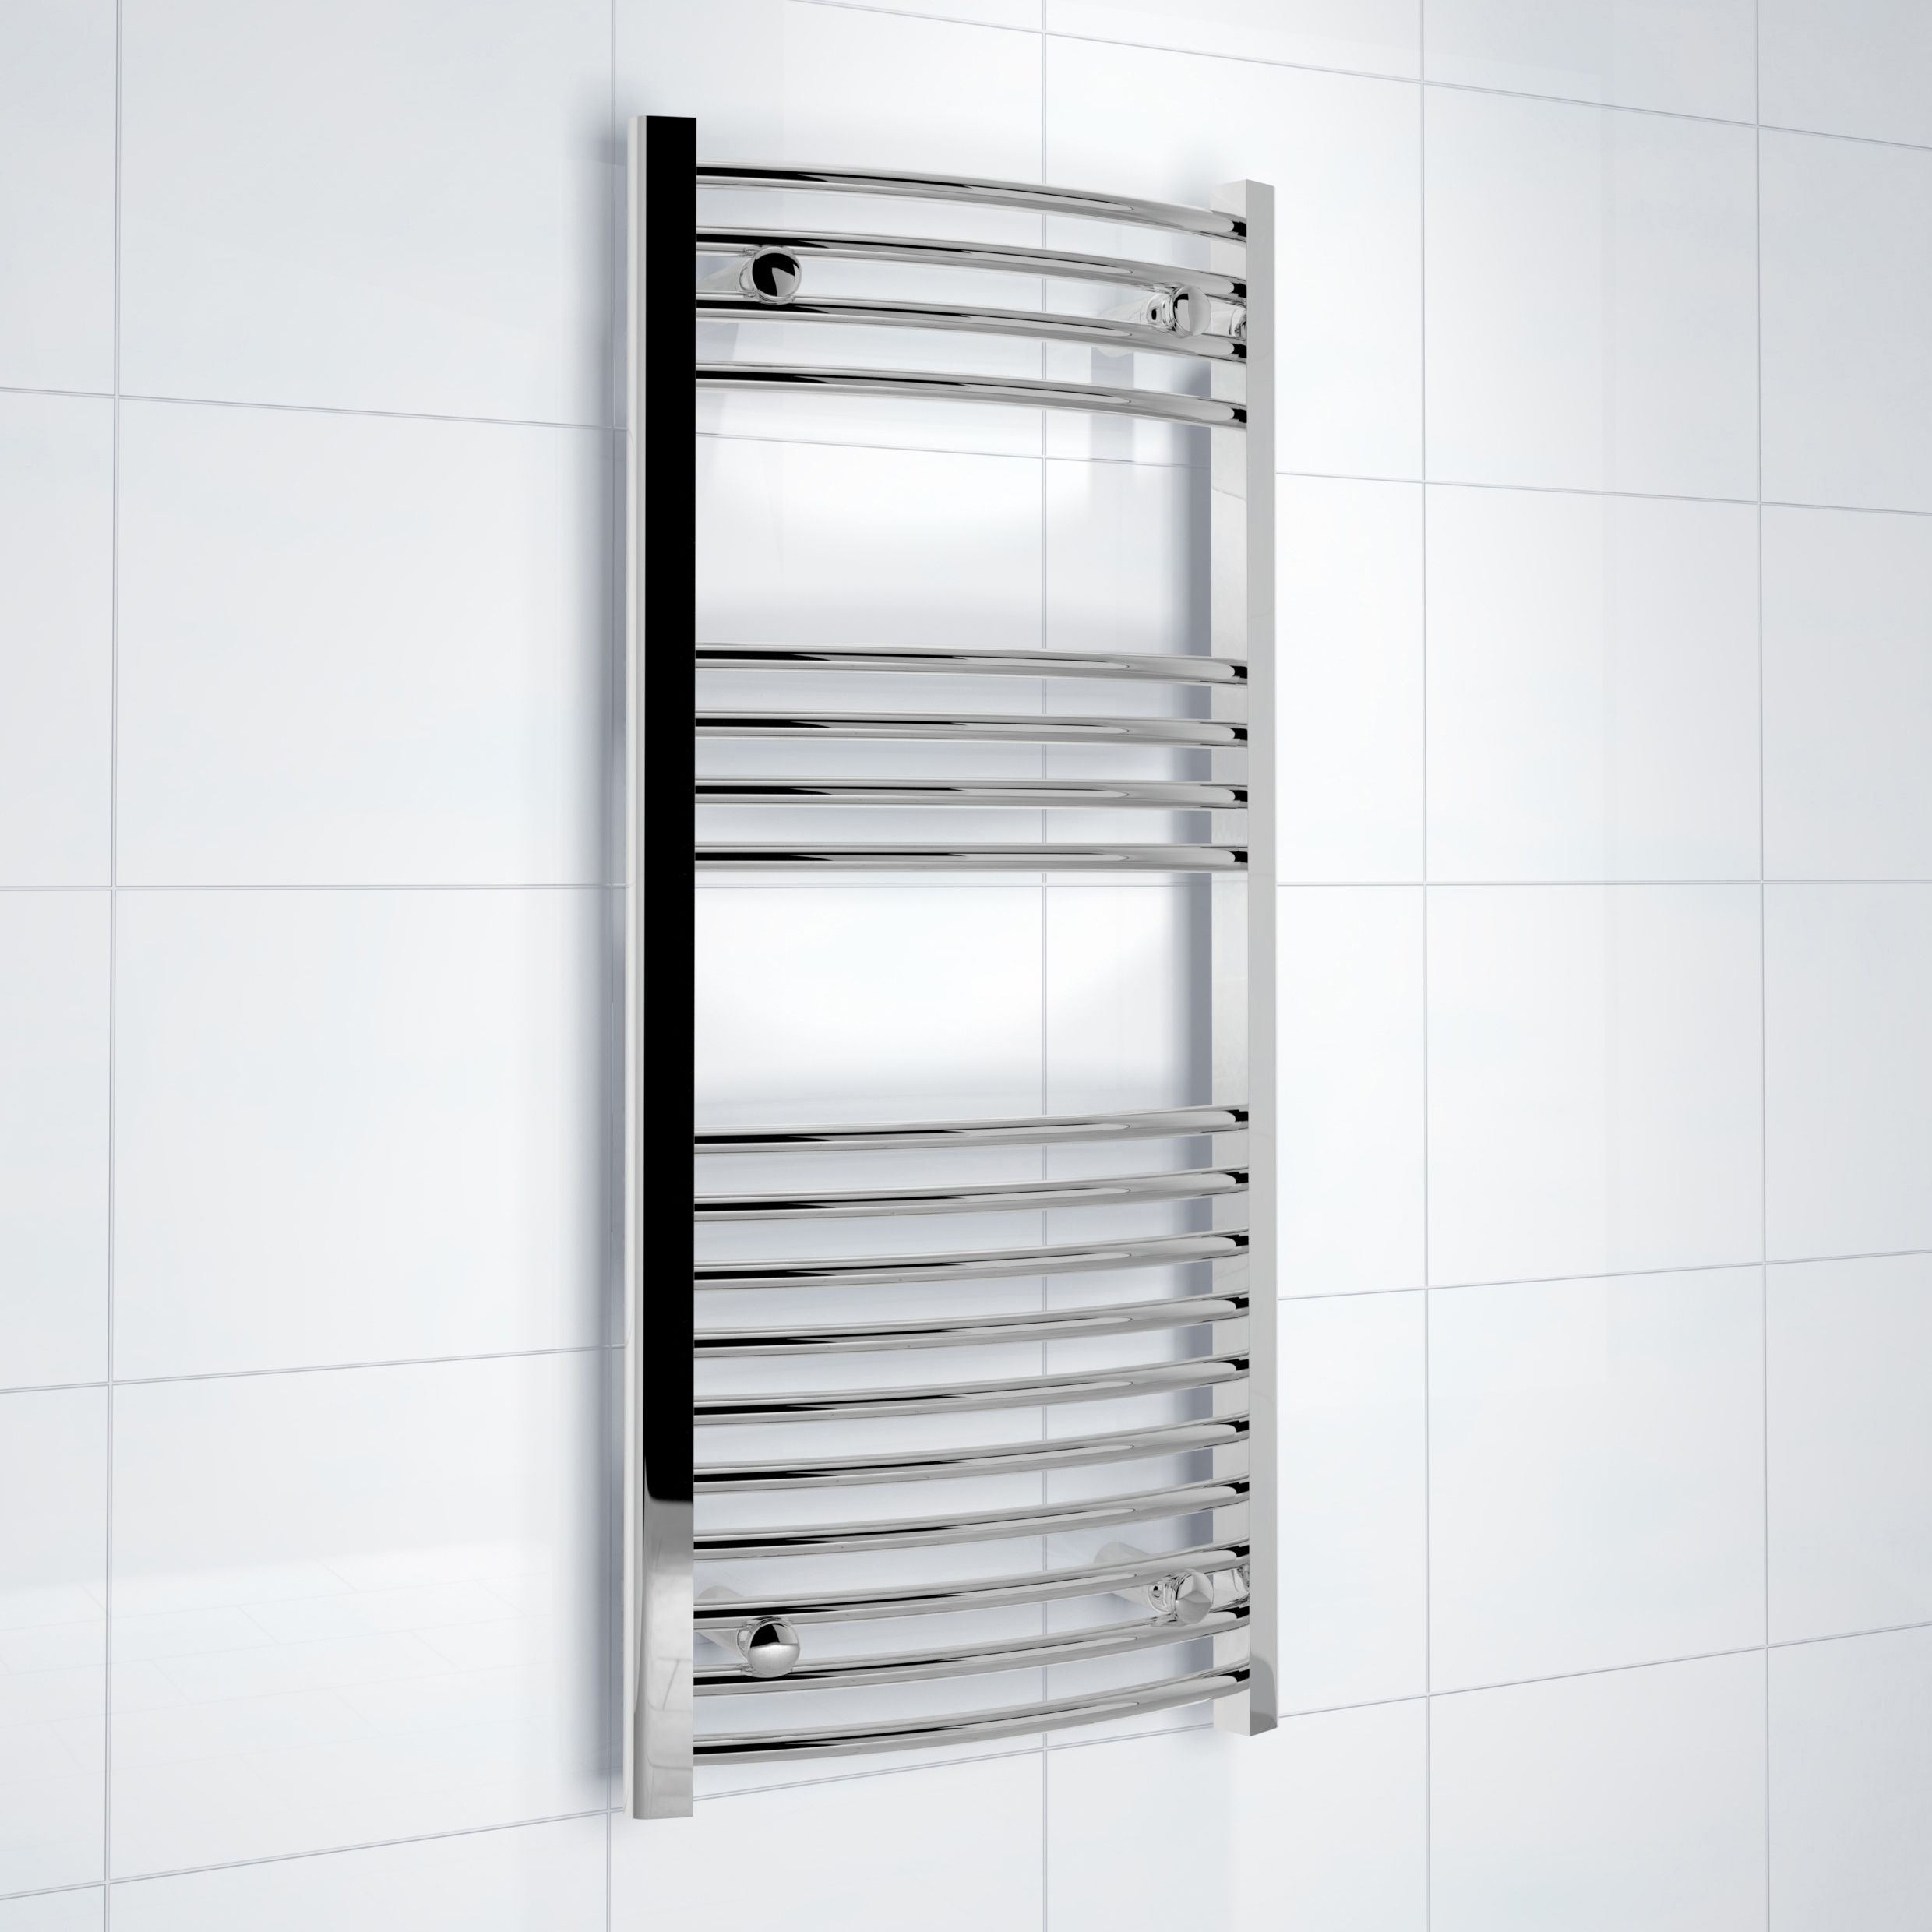 Kudox Electric Silver Towel Rail H 1000mm W 450mm: This Classic Silver Vertical Radiator Is Ideal For A